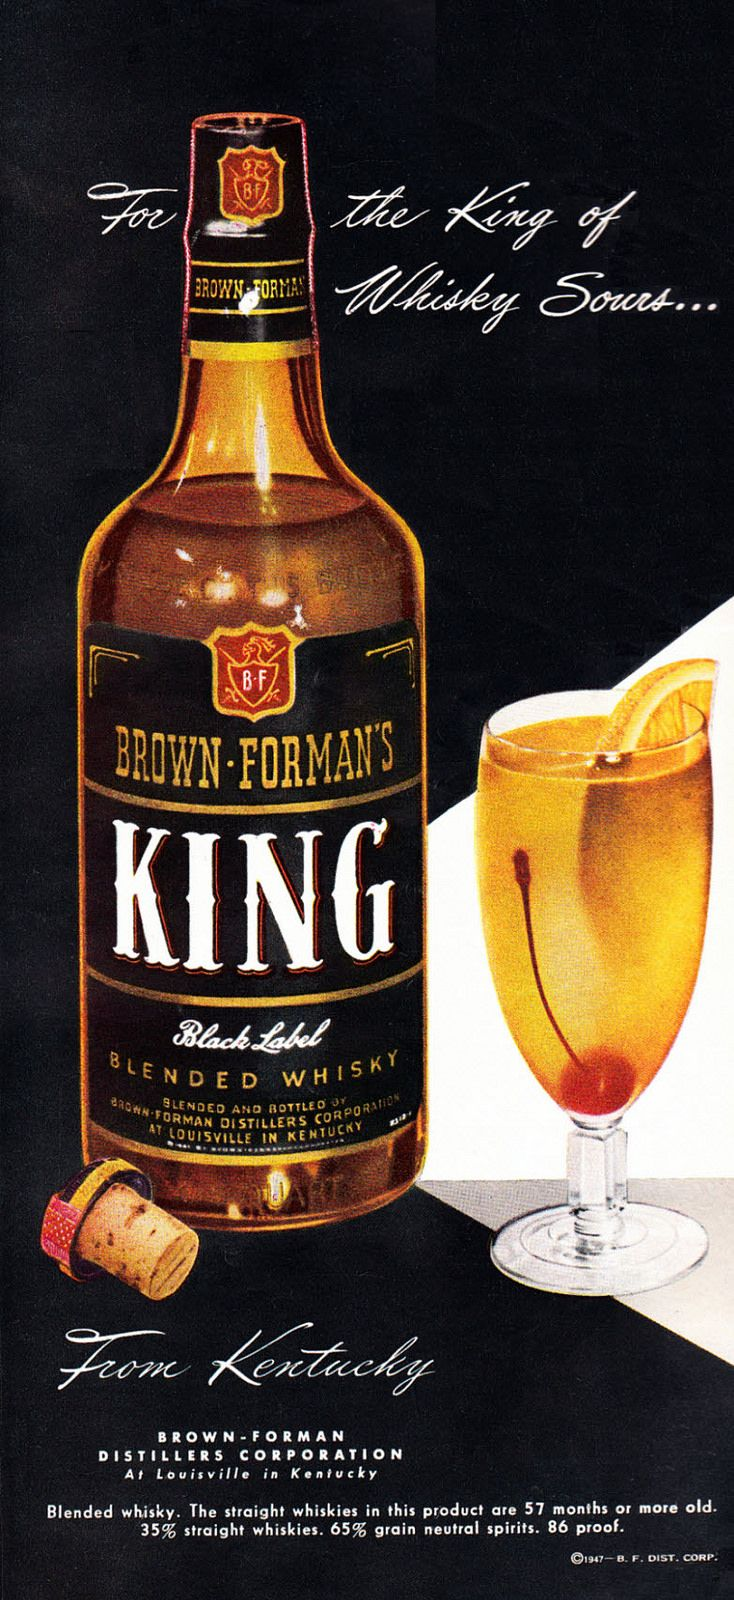 """https://flic.kr/p/oTtJ4Q   1947 Liquor Ad, Brown & Forman's King Black Label Whisky, """"For the King of Whiskey Sours""""   Published in Cosmopolitan, August 1947, Vol. 123, No. 2  Fair use/no known copyright. If you use this photo, please provide attribution credit; not for commercial use (see Creative Commons license)."""